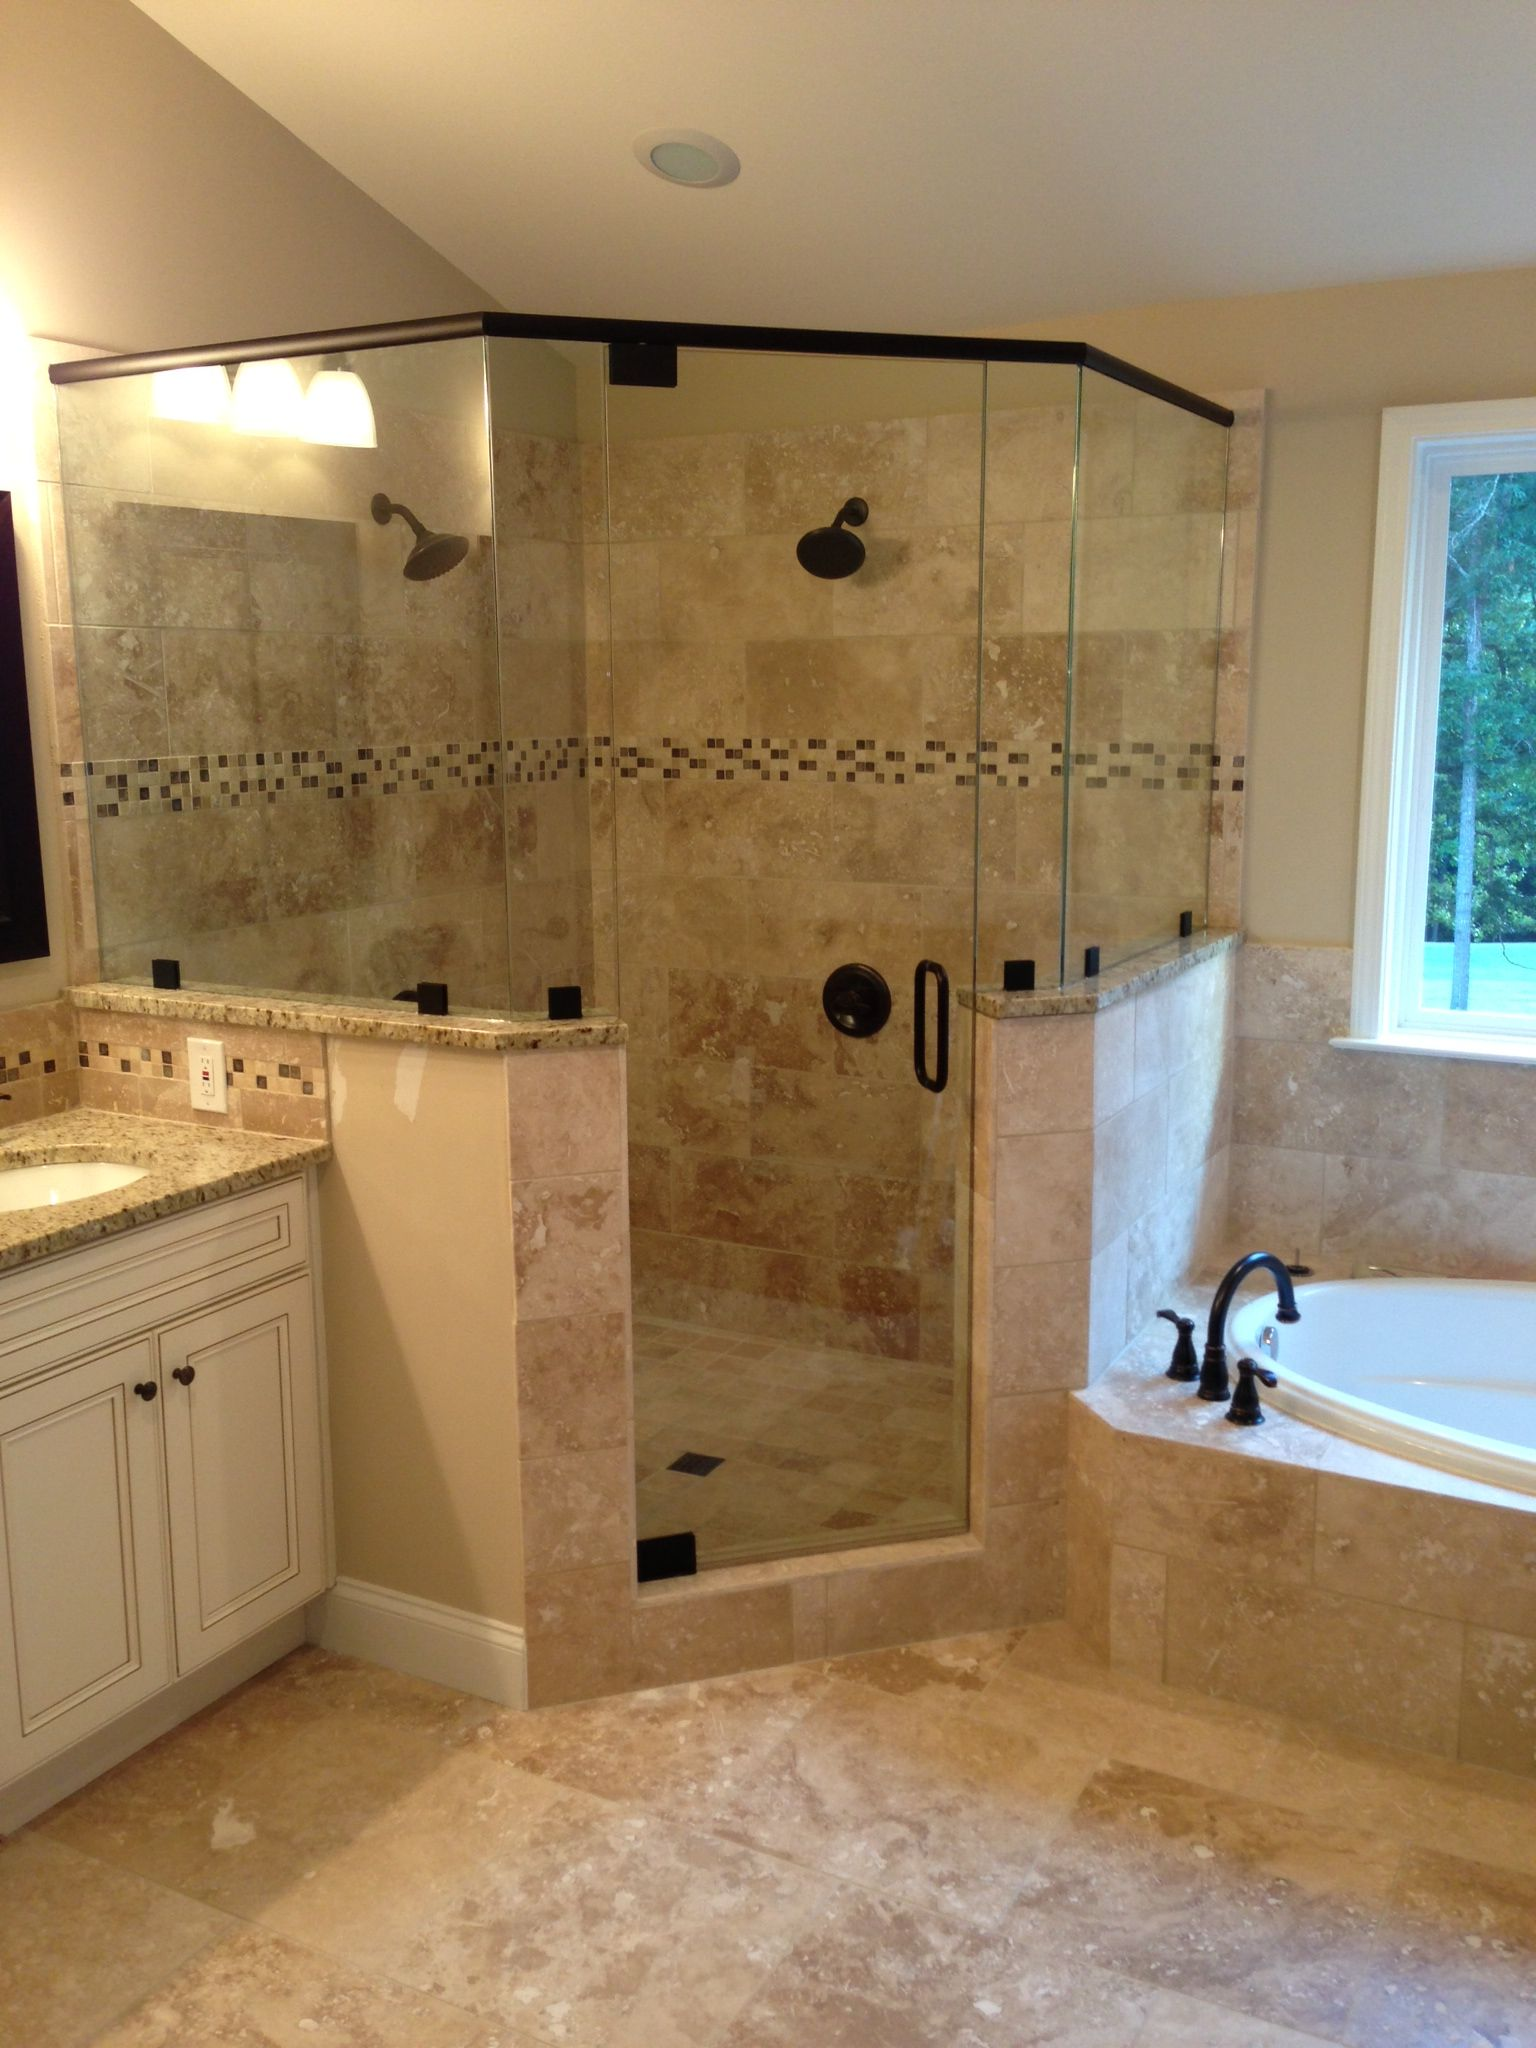 Frameless corner glass shower dual shower heads garden Bathroom remodel pinterest